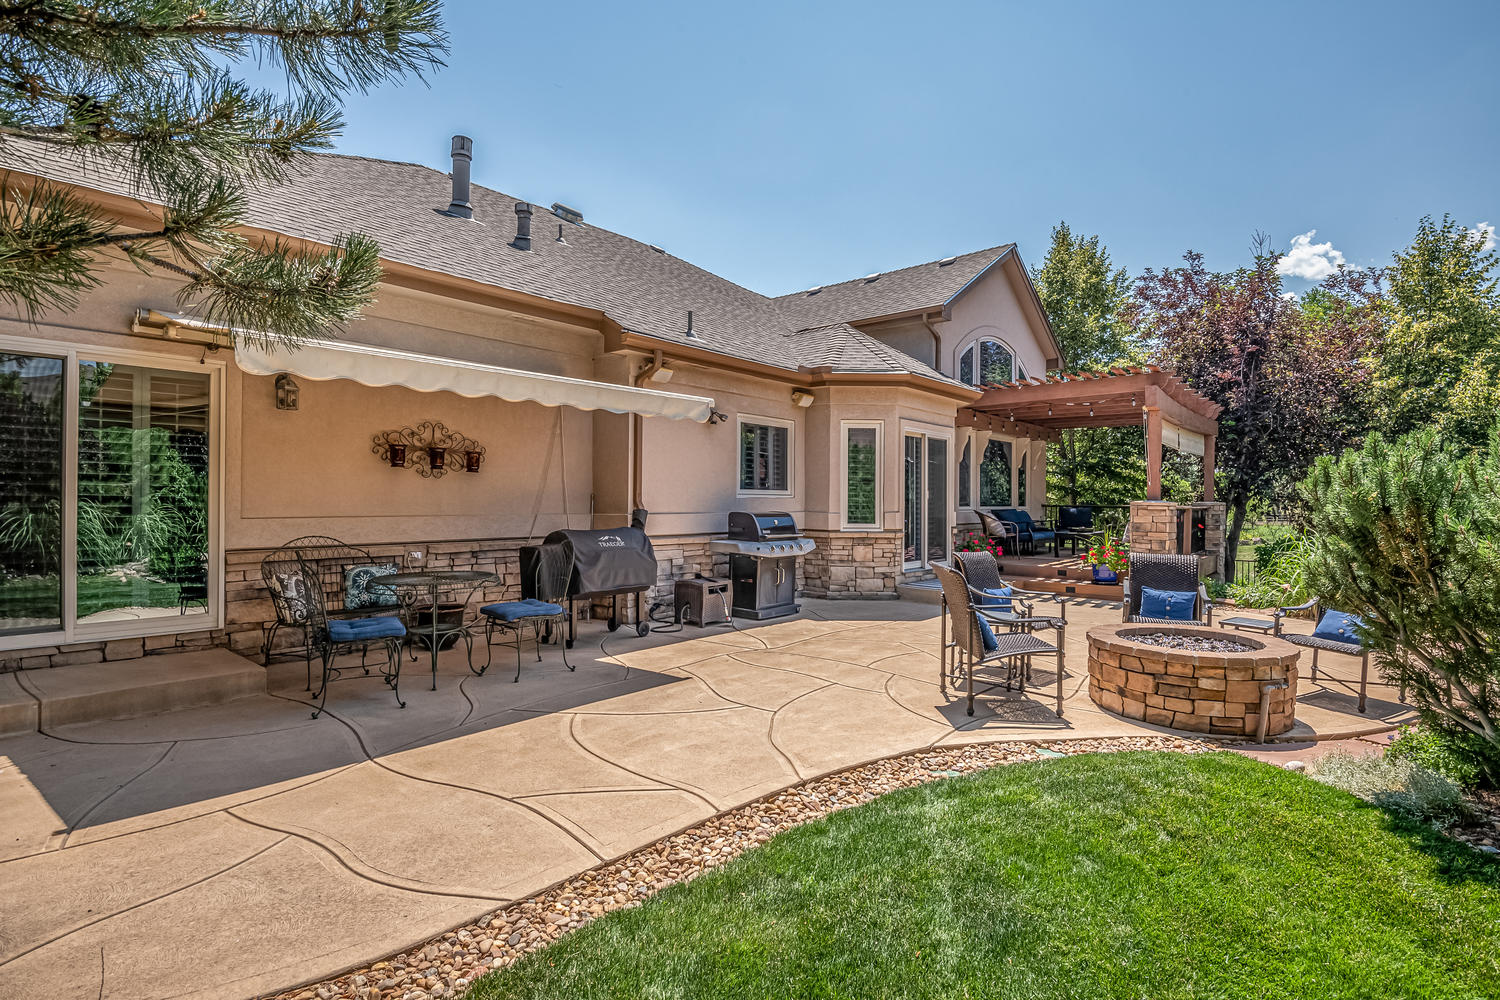 Huge Patio with Awning & Gas Line for Grill